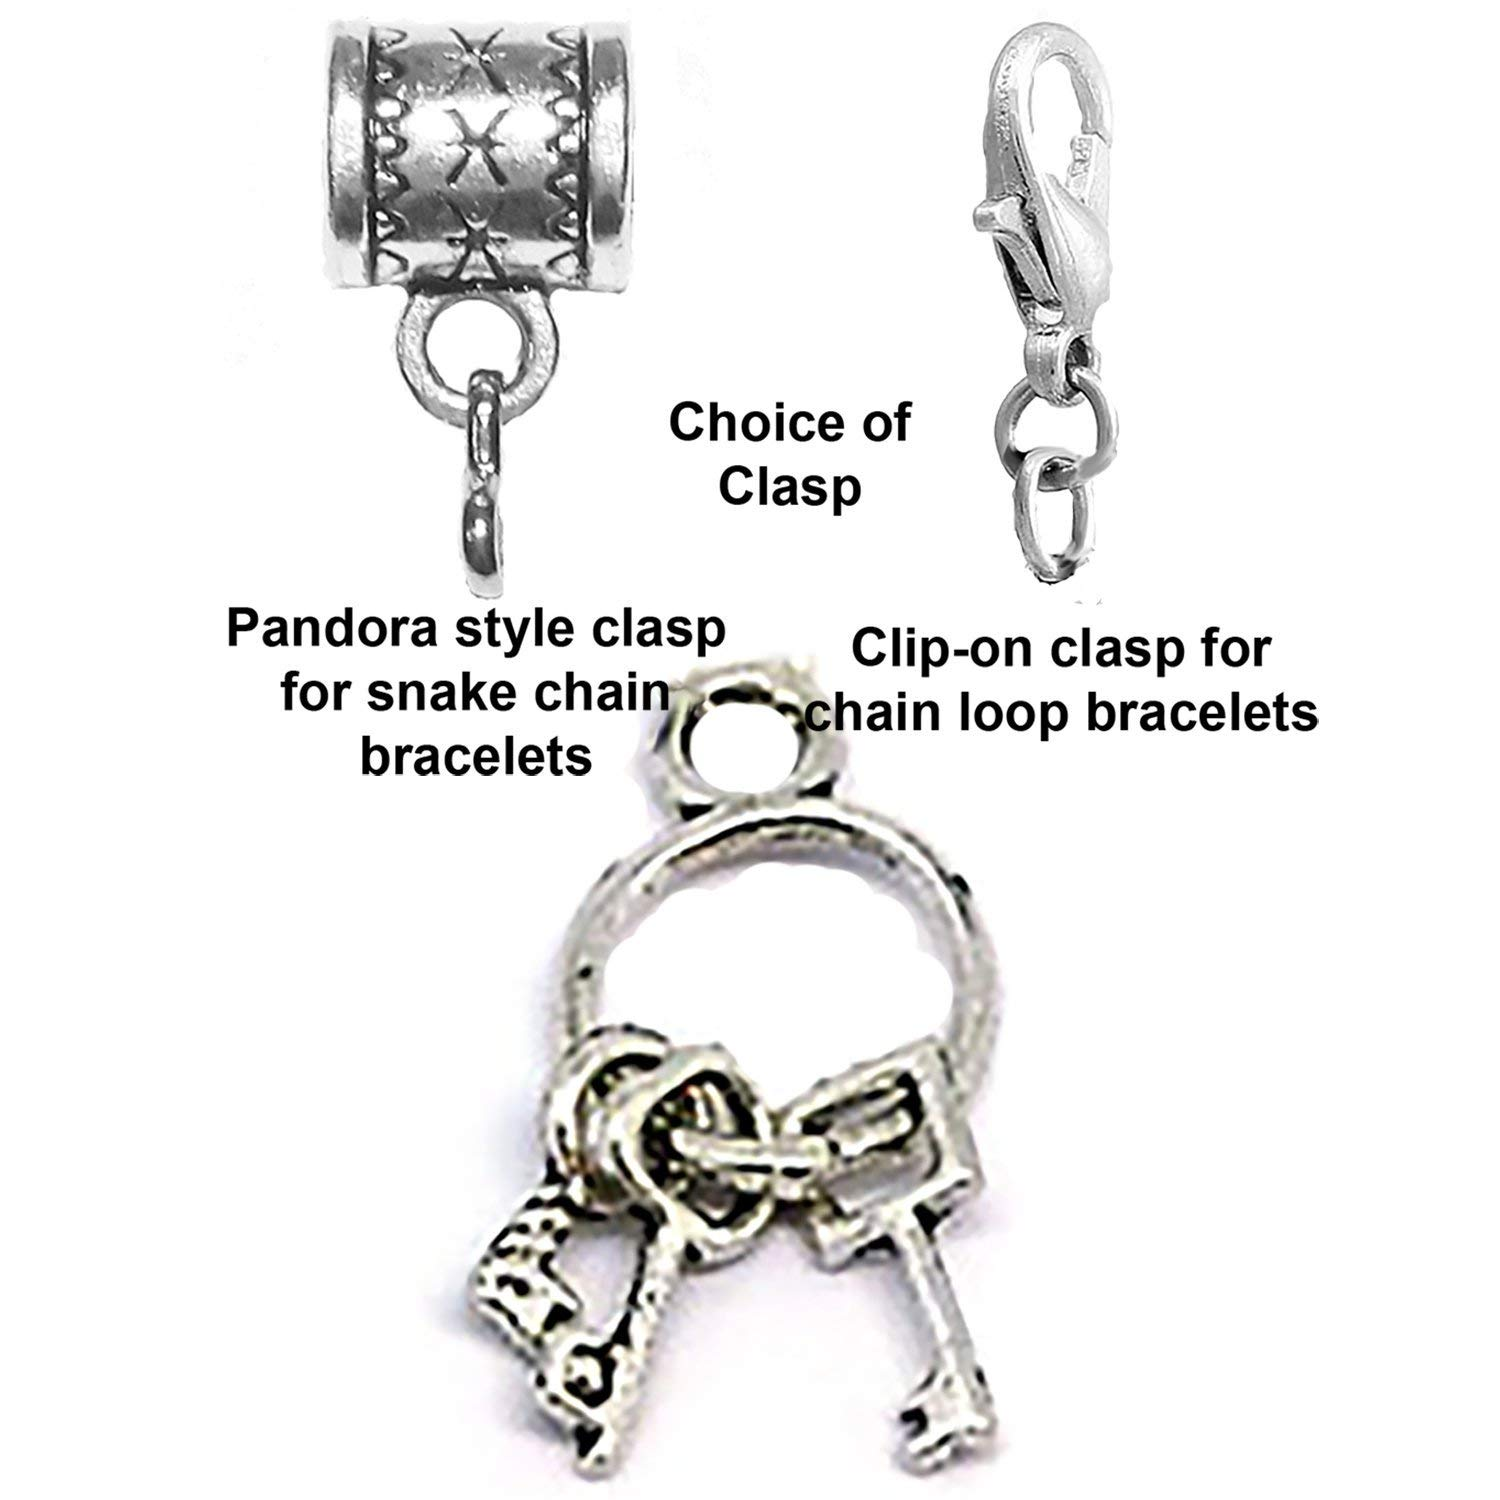 Keys on ring charm Tibetan Silver Hanging charm by Mossy Cabin for large hole snake chain charm bracelet, or add to a neck chain, pendant necklace or key chain. Optional clip-on clasp